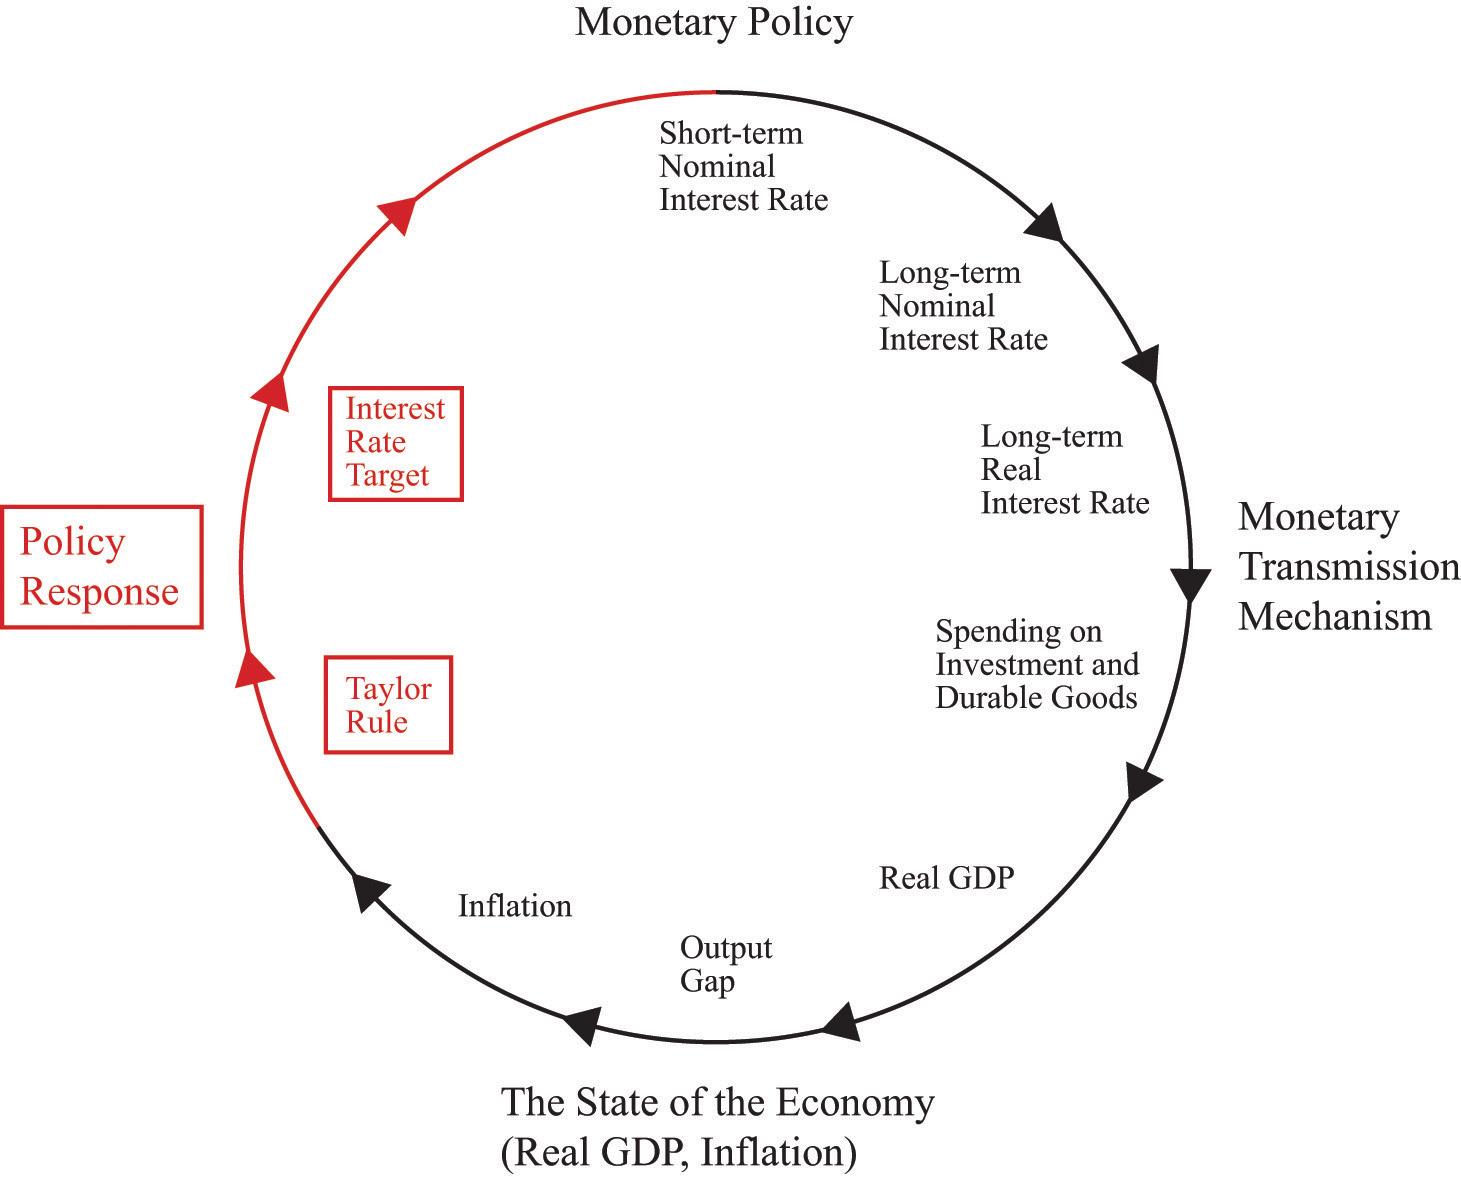 Monetary policy of the state